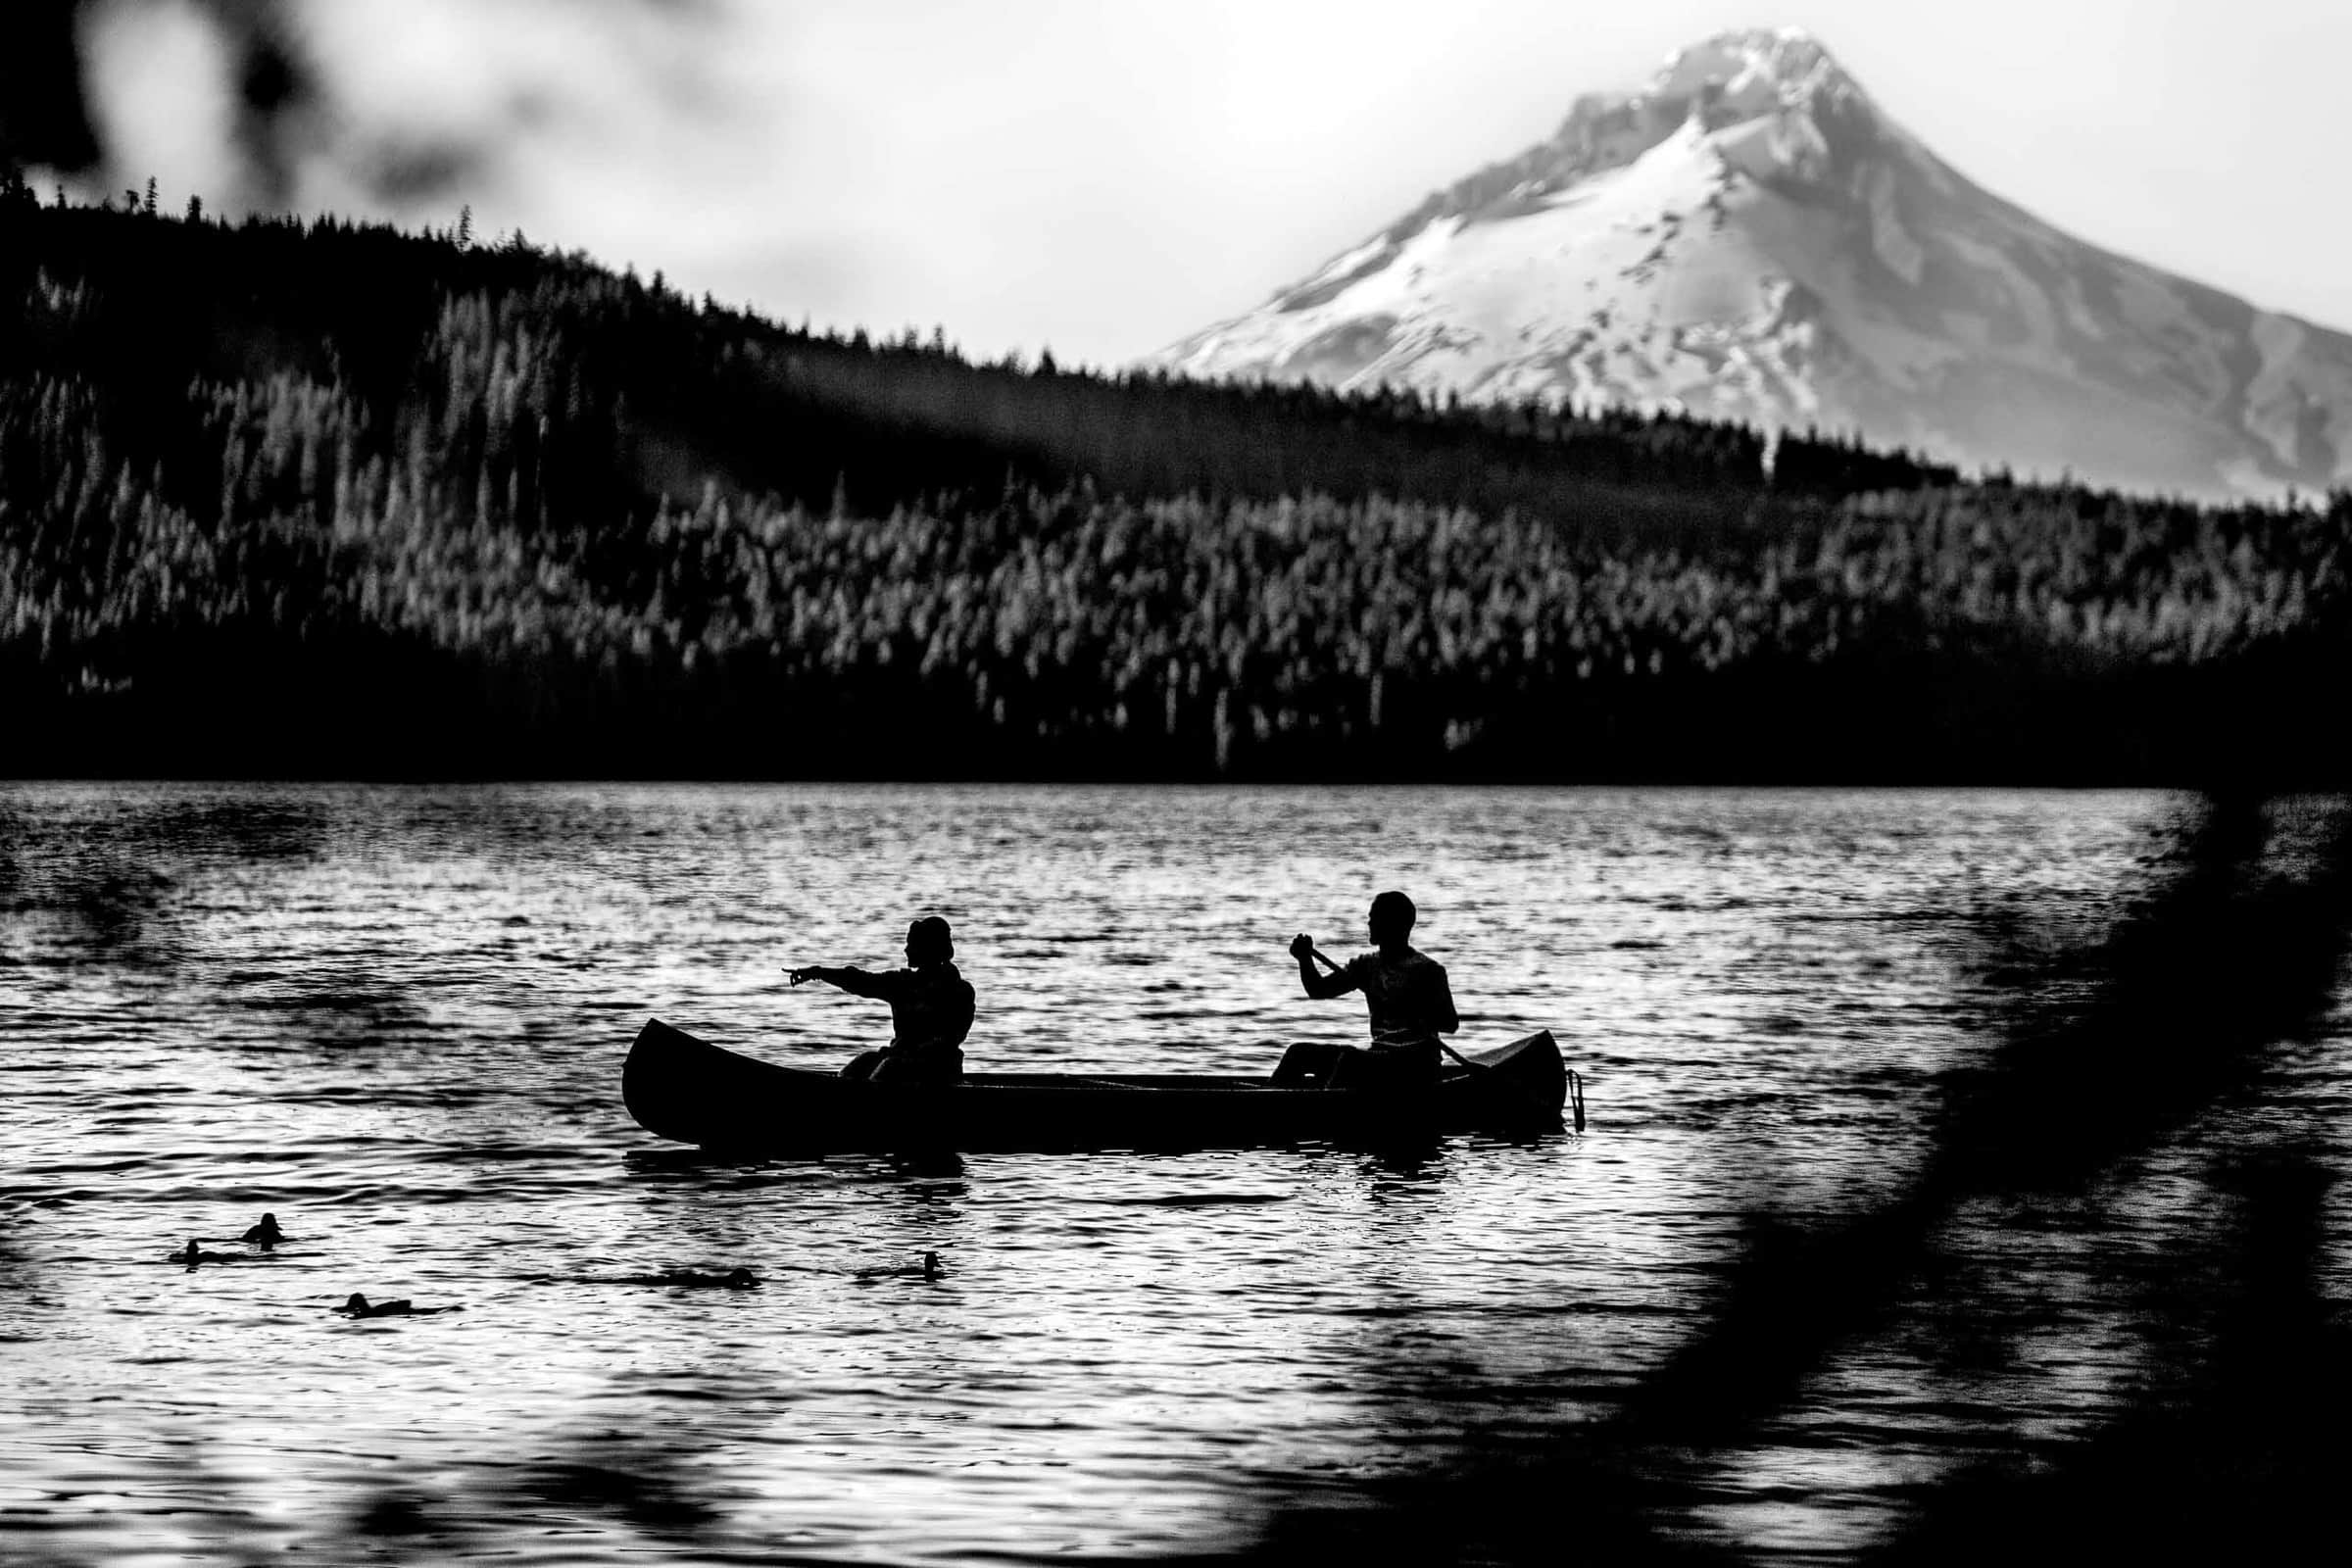 A fantastic silhouette photo of a couple canoeing at Timothy lake with Mt Hood in the background for their Oregon engagement photos